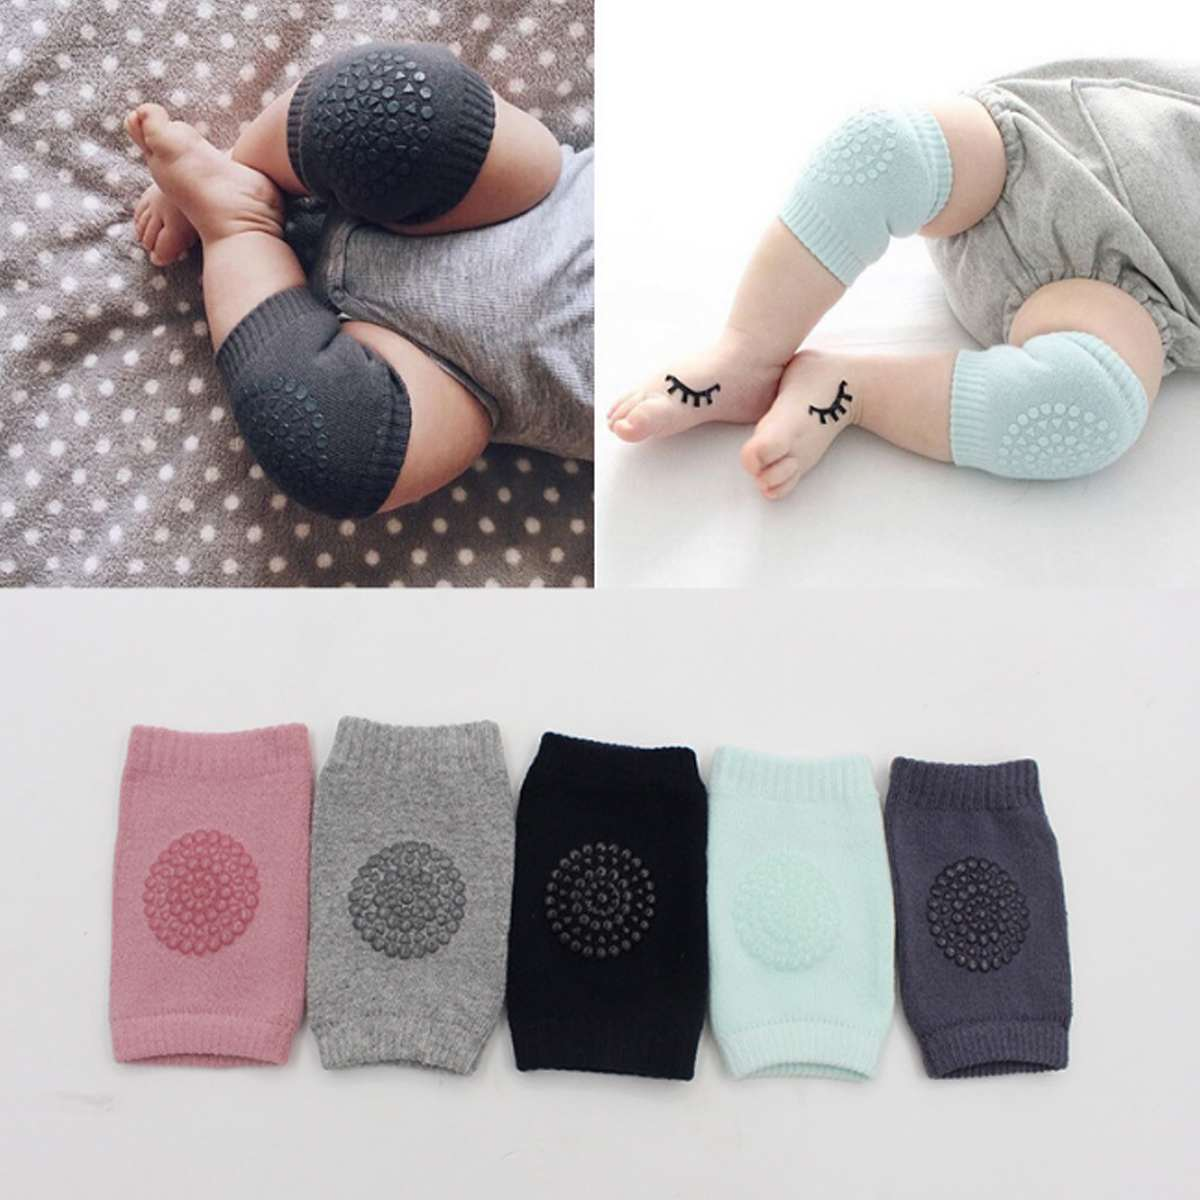 1 Pair Baby Knee Pad Baby Kneecap Kids Safety Crawling Elbow Cushion Infant Toddler Leg Warmer Knee Support Sport Protector Gear